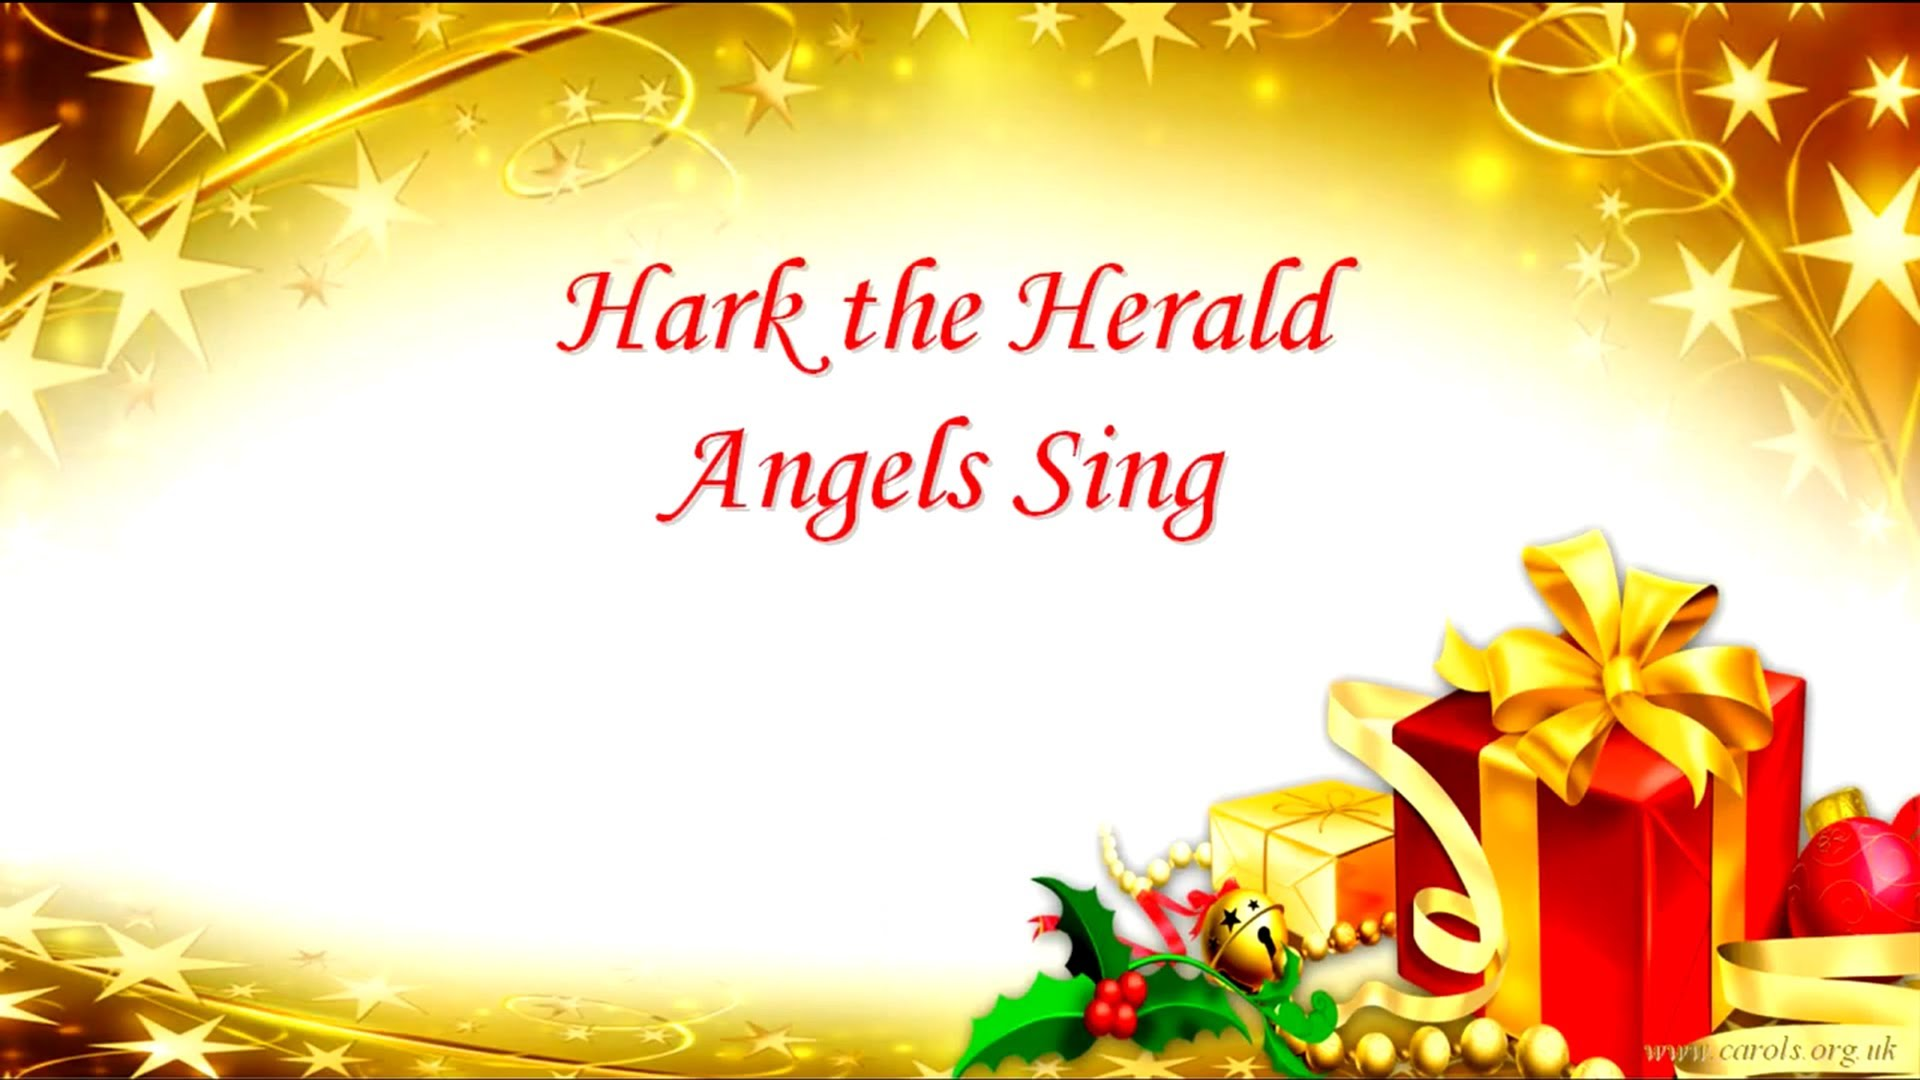 HARK THE HERALD ANGELS SING Lyrics | Christmas music | Pinterest ...